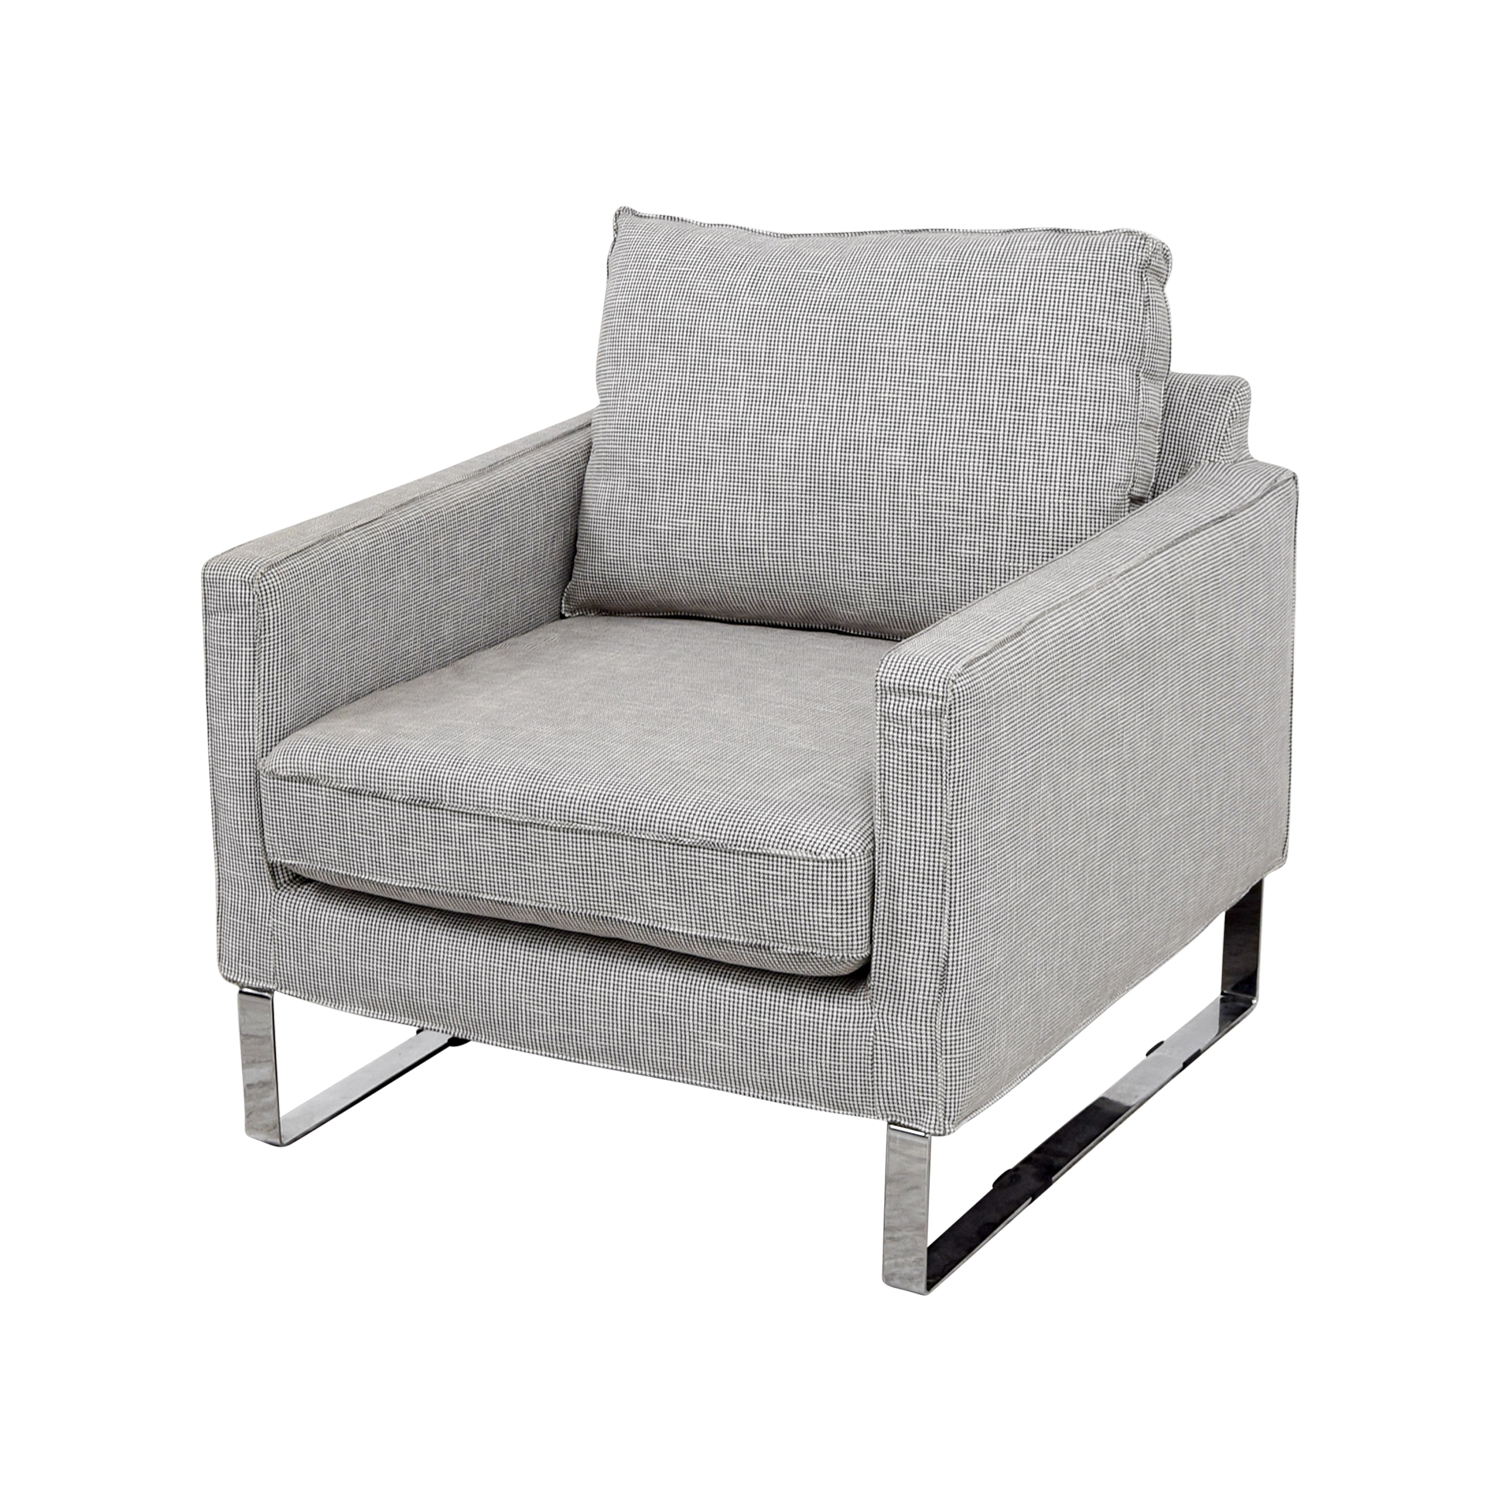 Incredible 69 Off Ikea Ikea Mellby Dogtooth Accent Chair Chairs Beutiful Home Inspiration Cosmmahrainfo